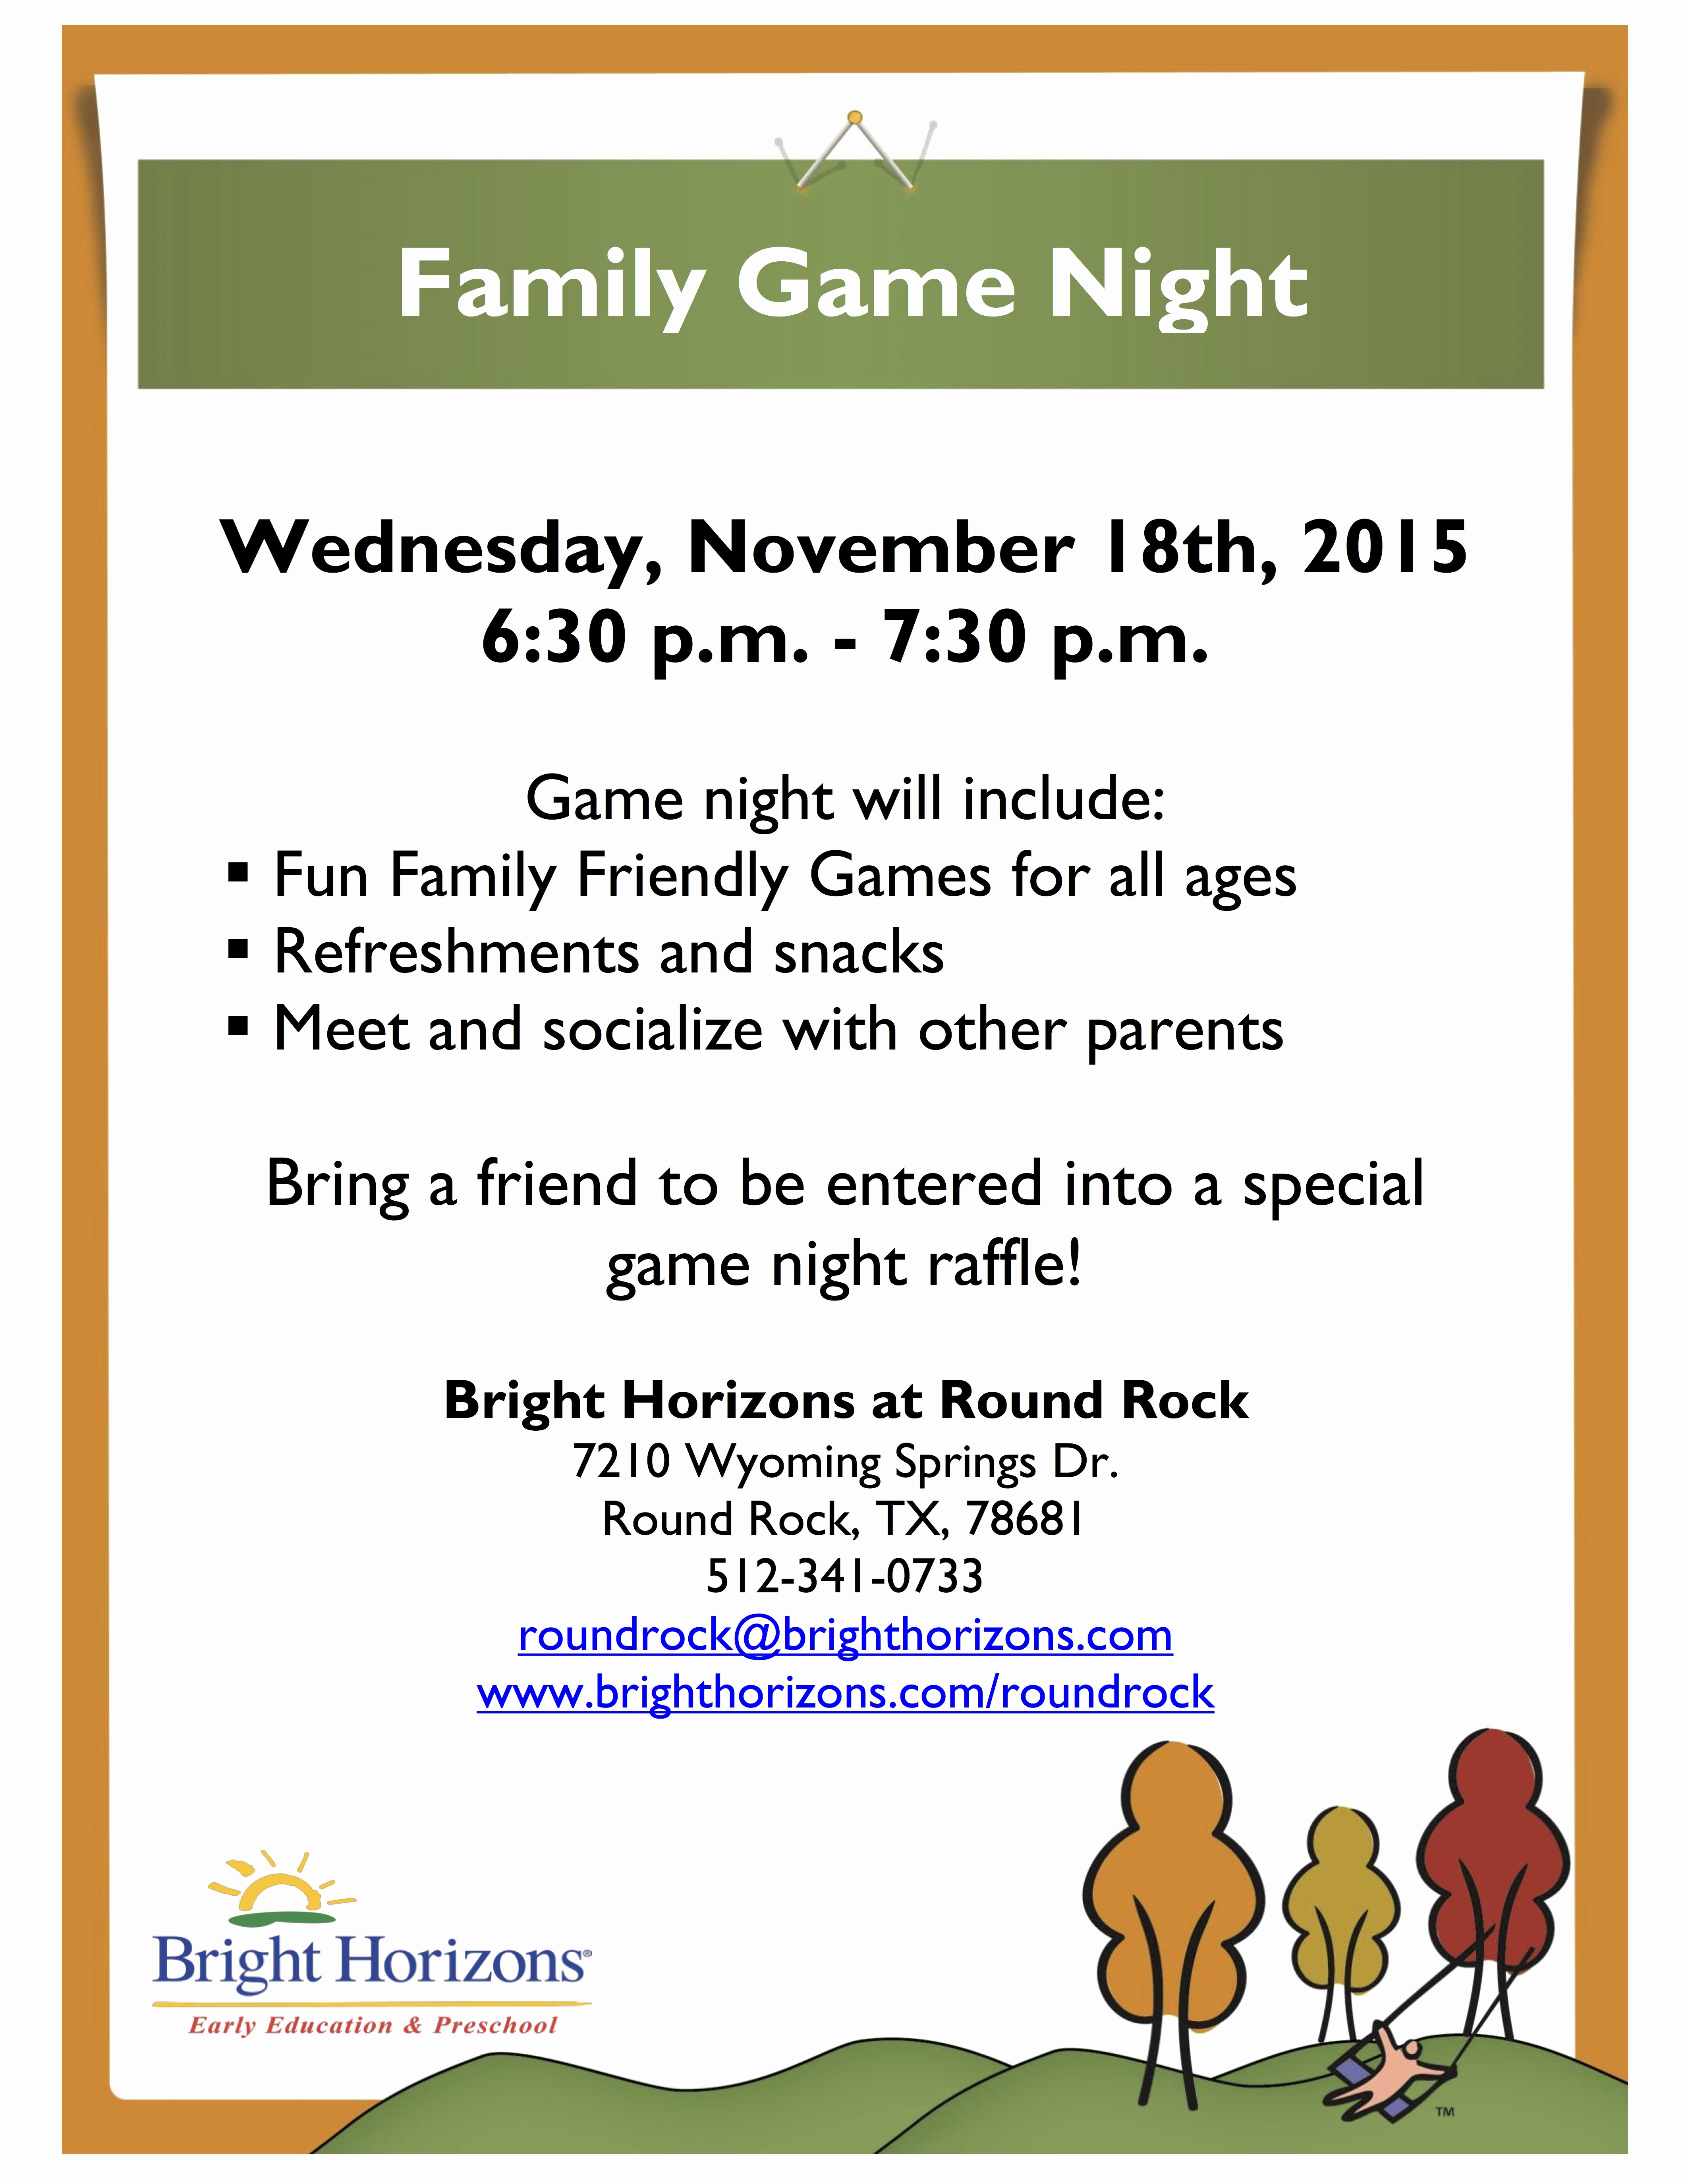 Family Fun Night Flyer Template Fresh Family Fun Night Flyer Template to Pin On